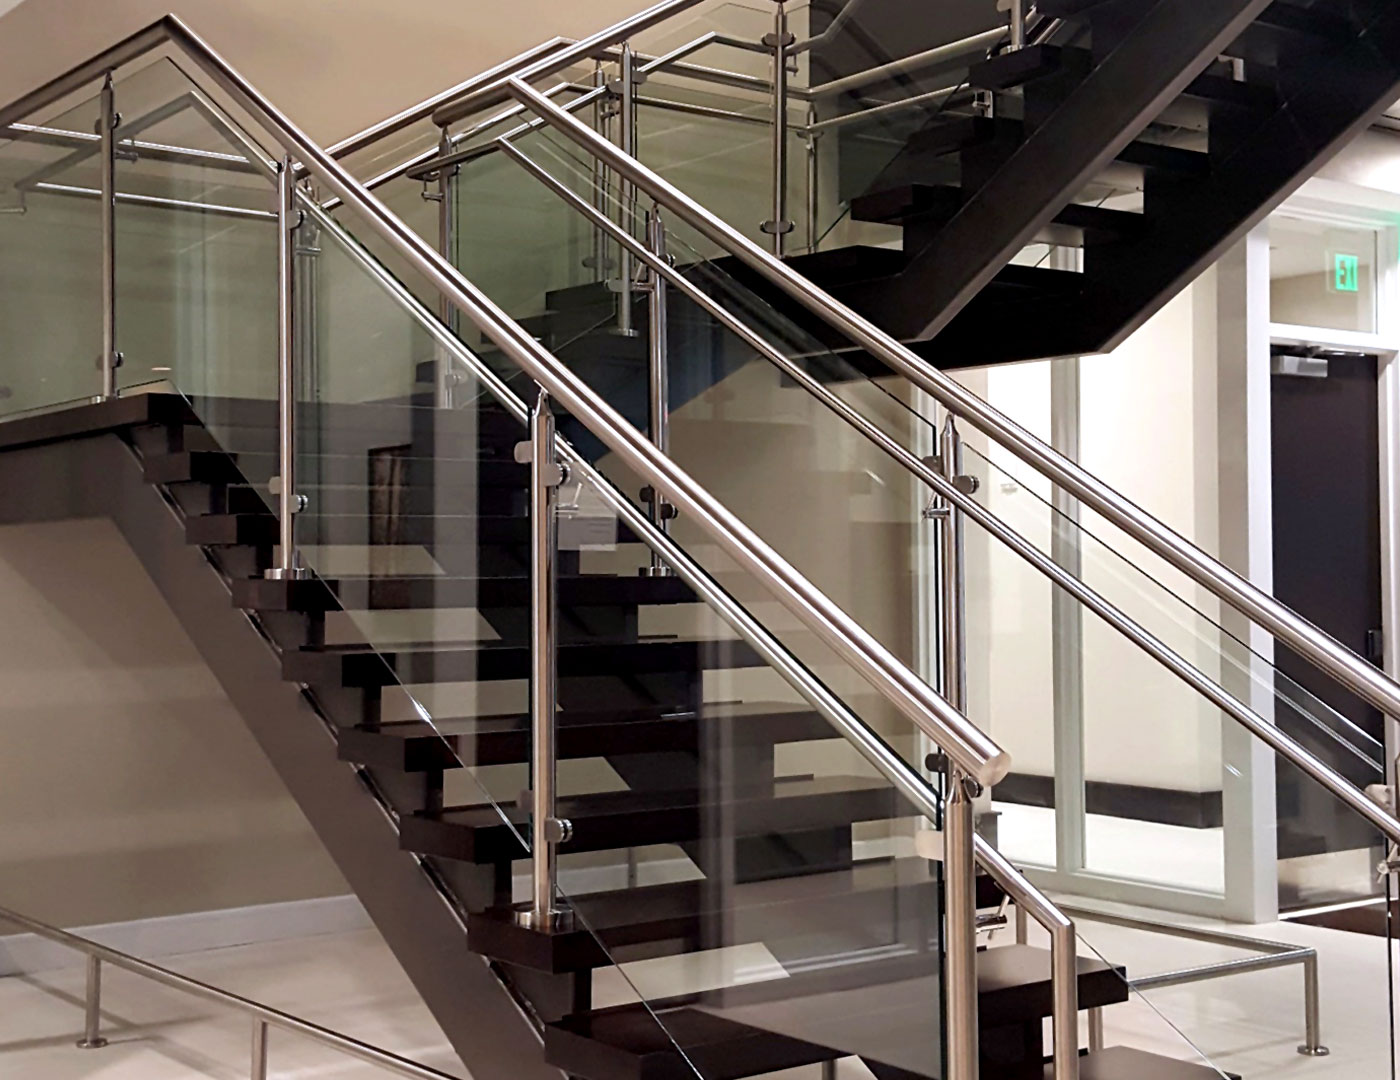 Resort features Mocaco glass railing